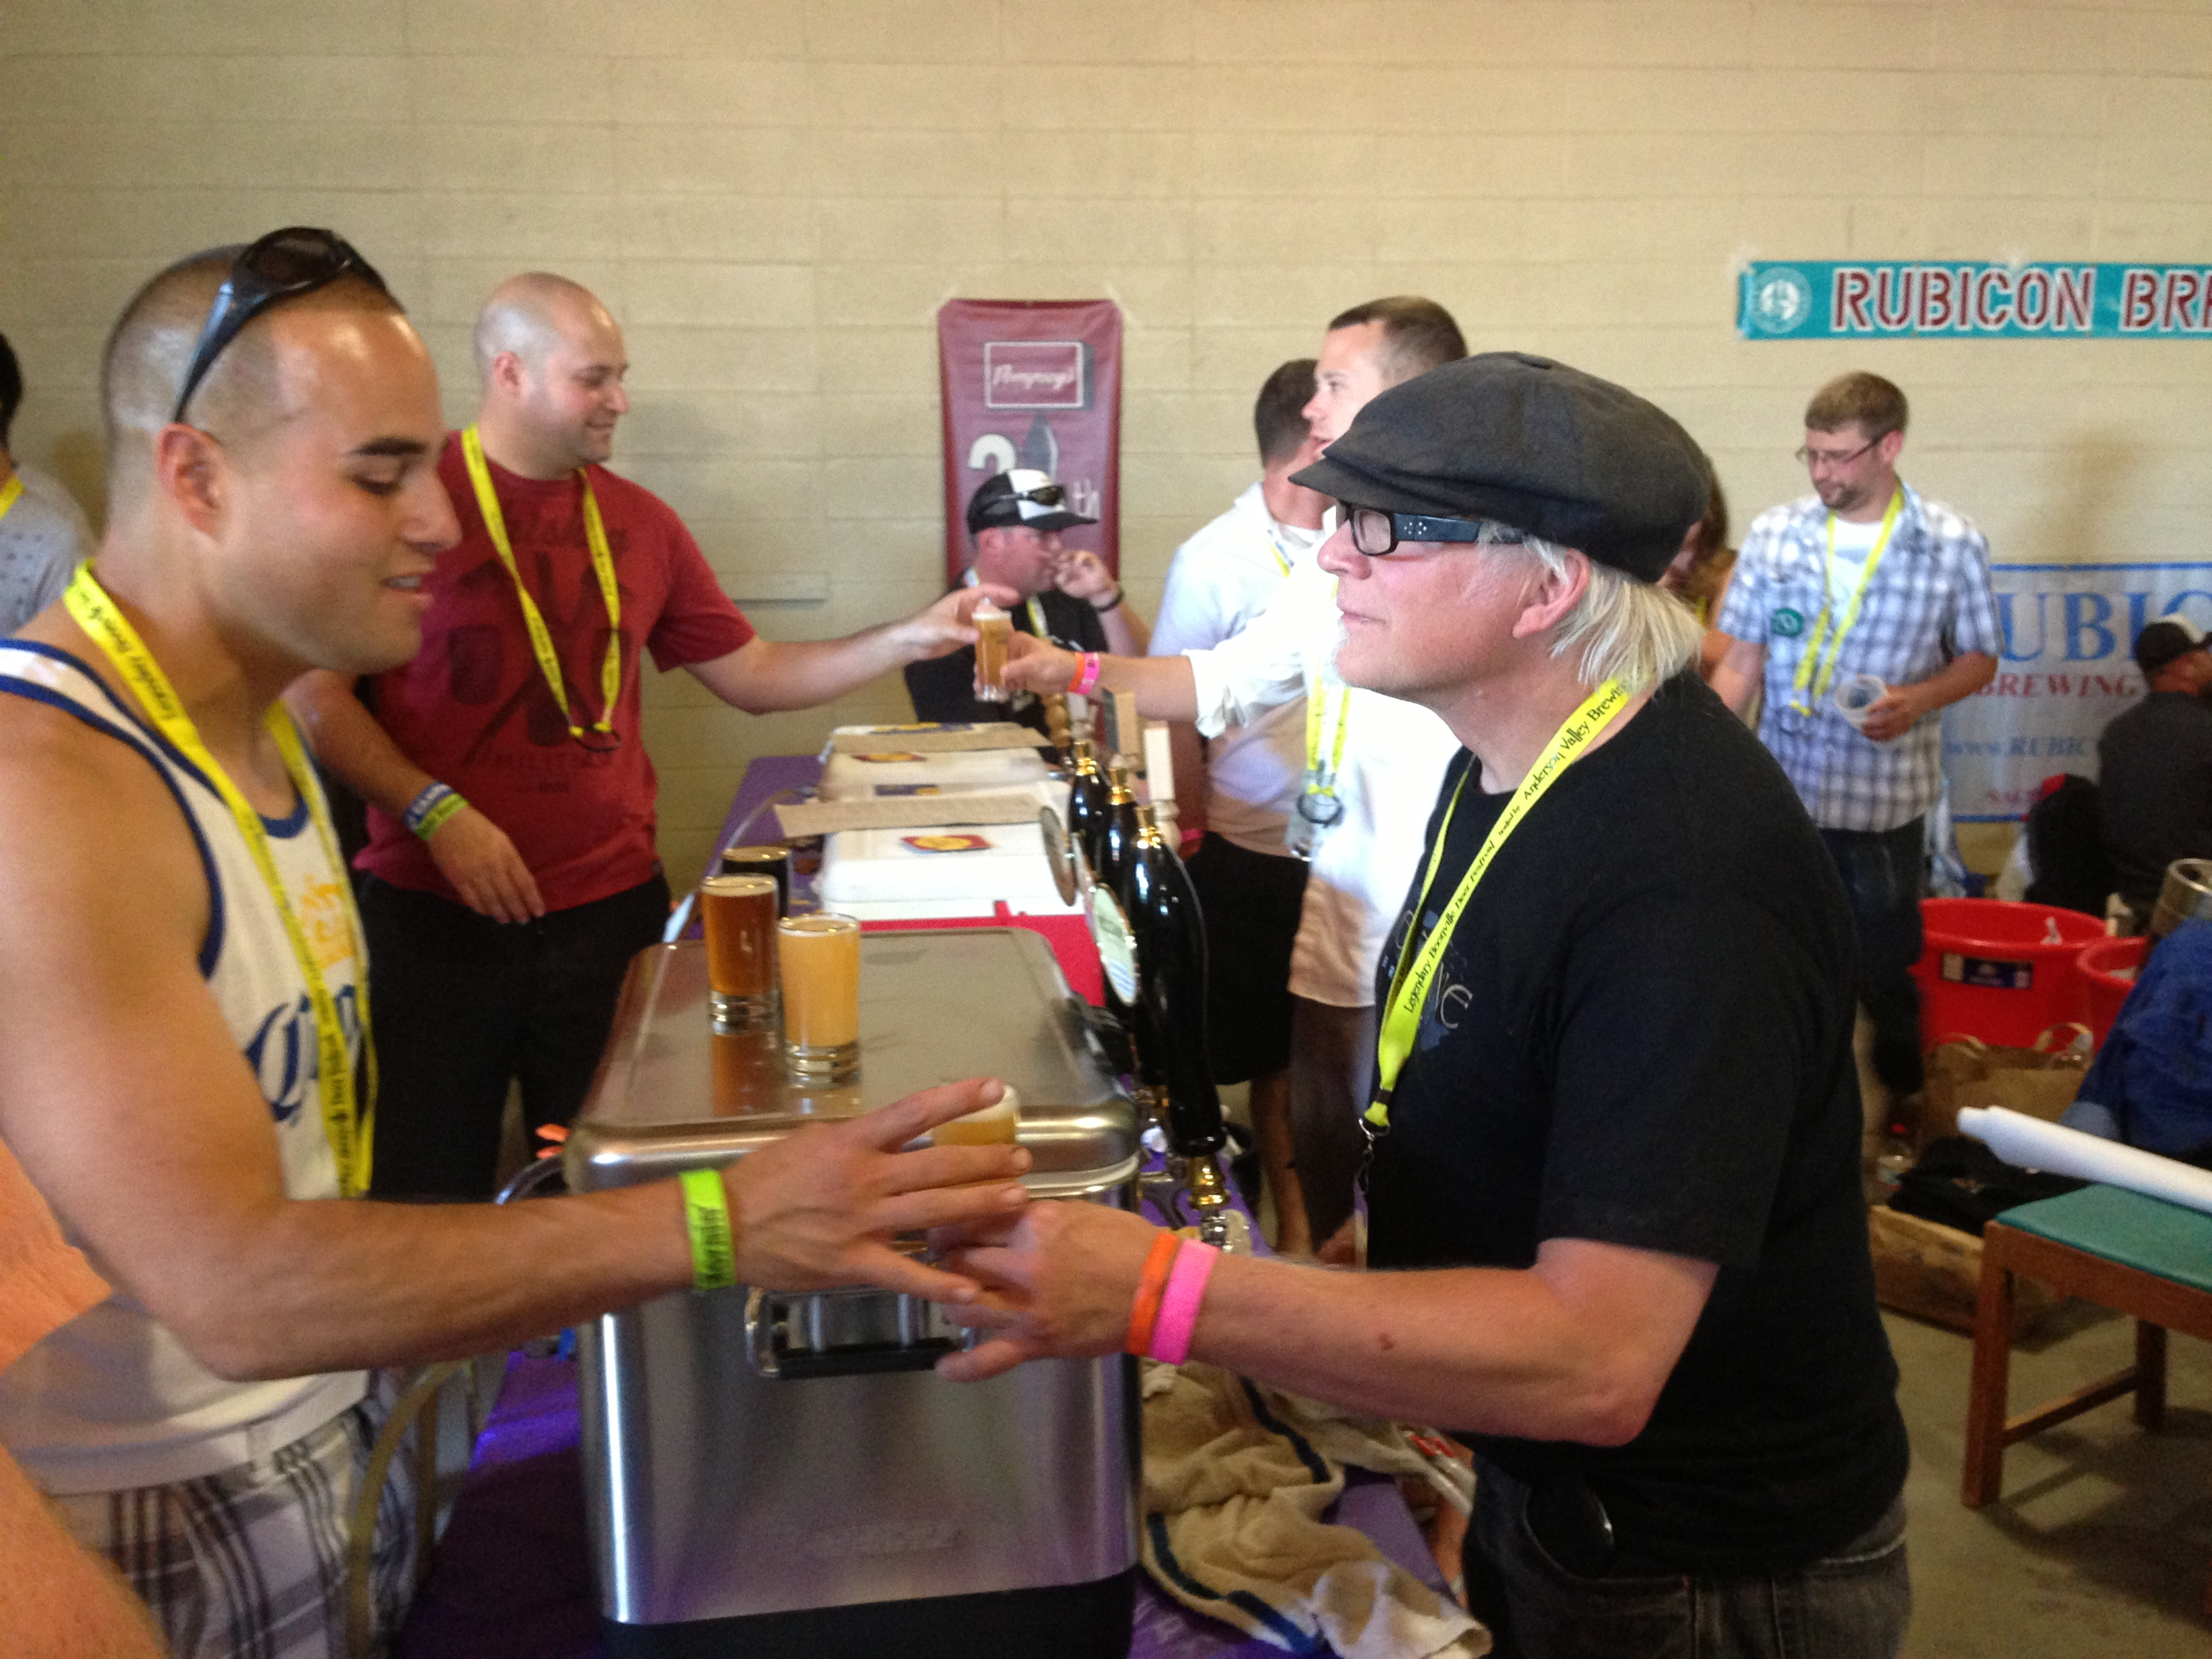 Brewer Alan Atha of Baeltane Brewing from Novato, CA serves up craft beer at Boonville Beer Fest 2013